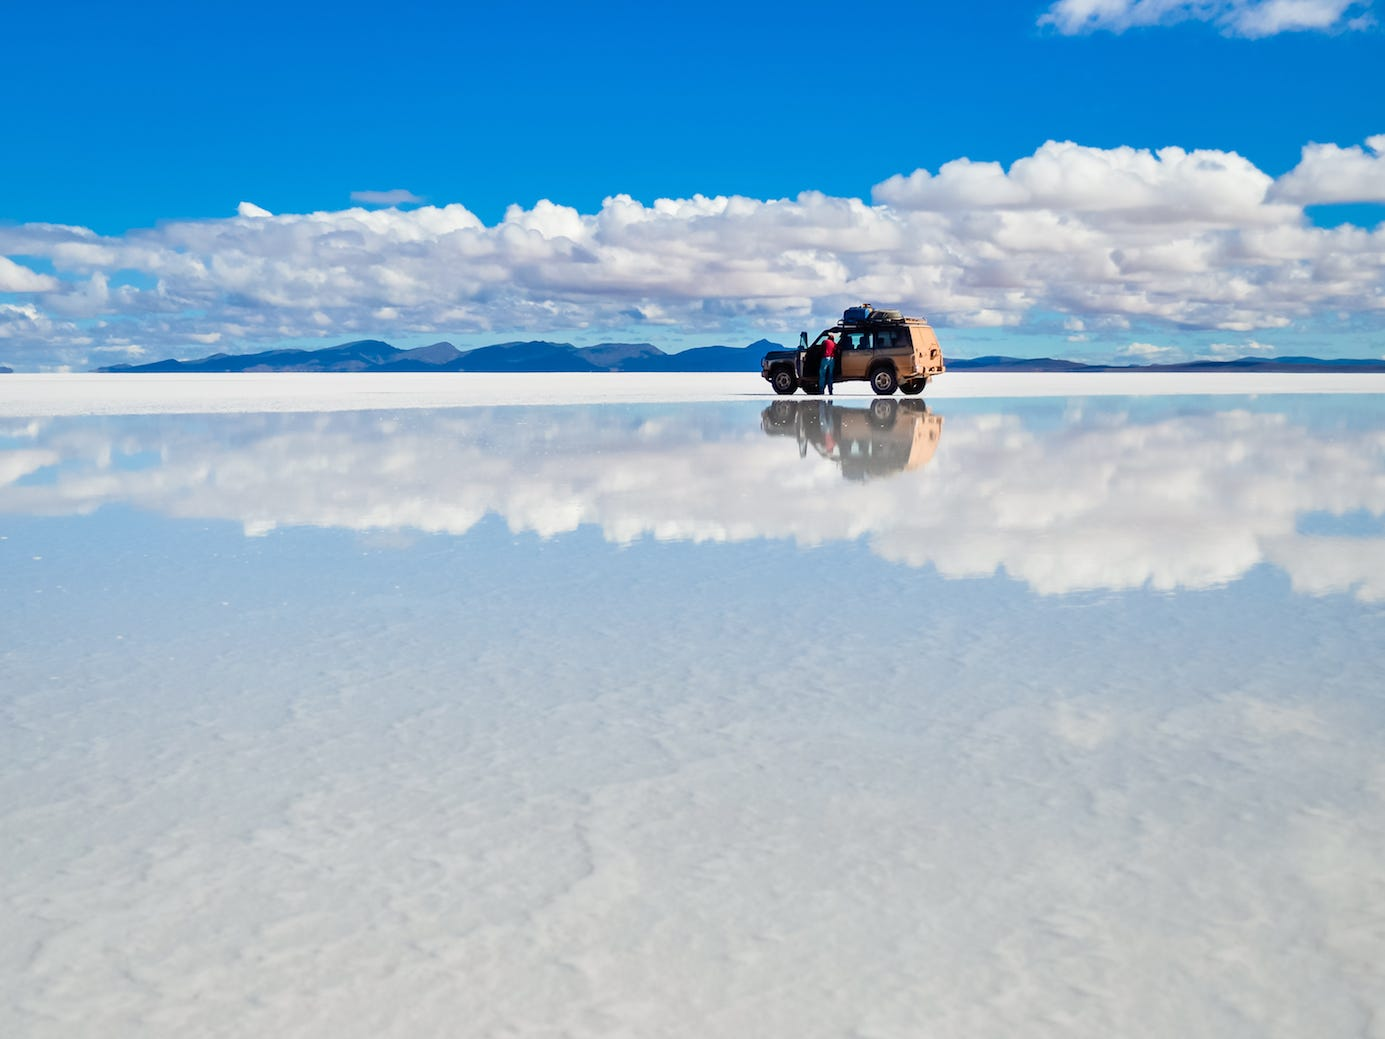 Slide 24 of 51: When lakes near these Bolivian salt flats overflow, they create a majestic mirrored surface that reflects the sky and clouds above. TheSalar de Uyuni are the largest of their kind and cover a whopping 4,050 square miles of the Bolivian Altiplano.The vast oasis of salt boasts a horizon that never seems to end, making this spot a photographer's dream.